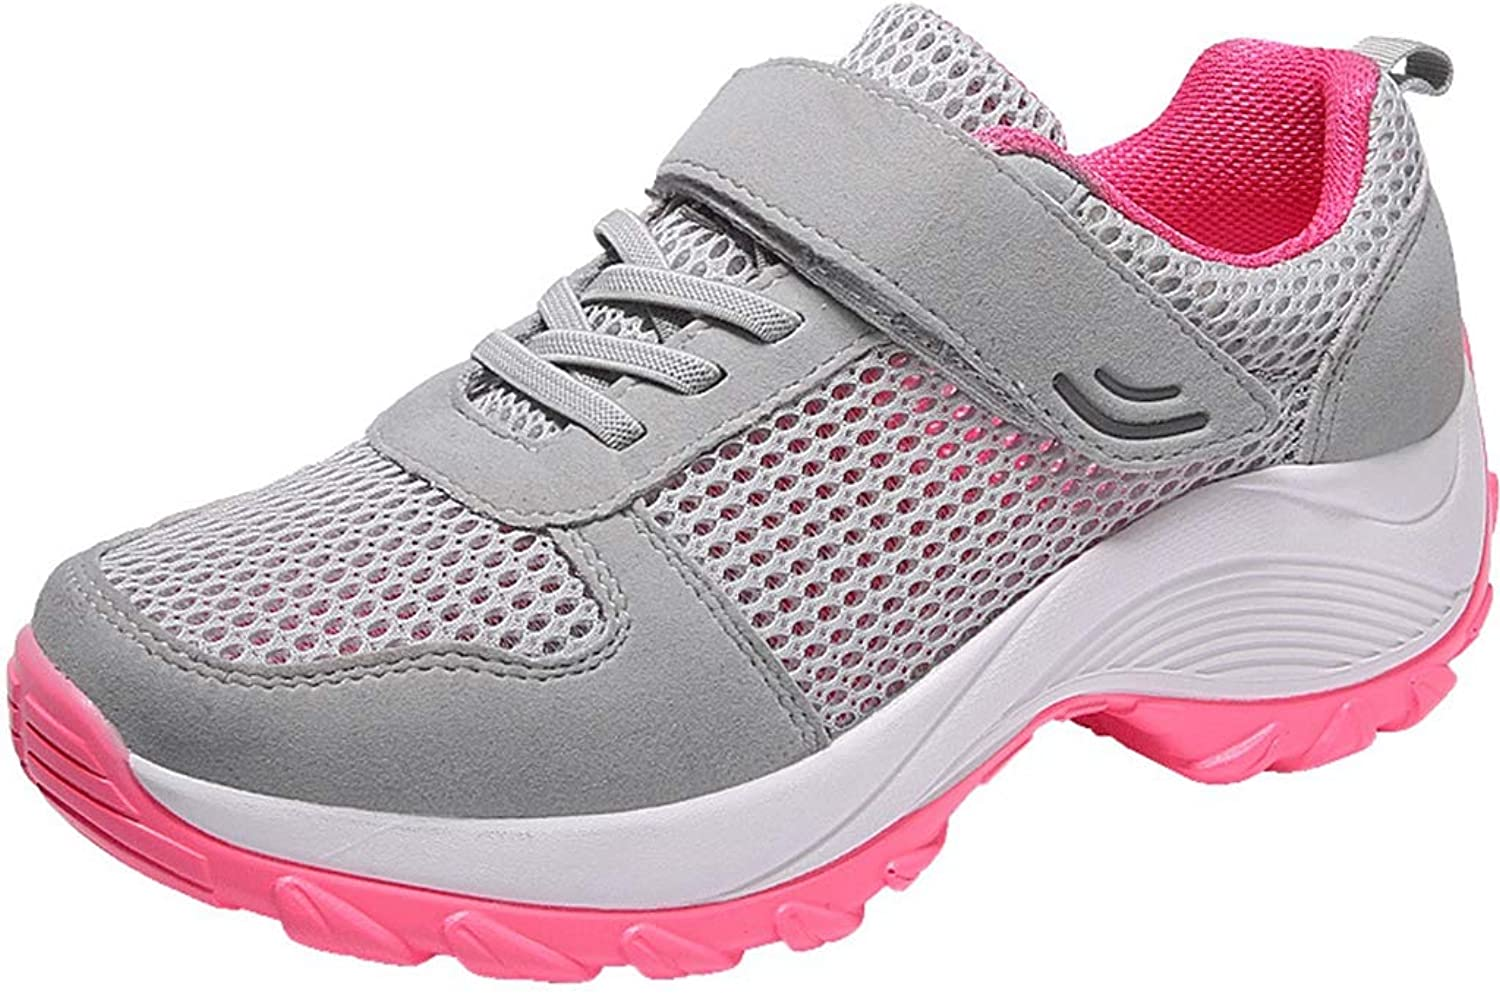 GIY Women's Sports Sneakers Non Slip Lightweight Casual Athletic shoes Mesh Air Running Walking shoes